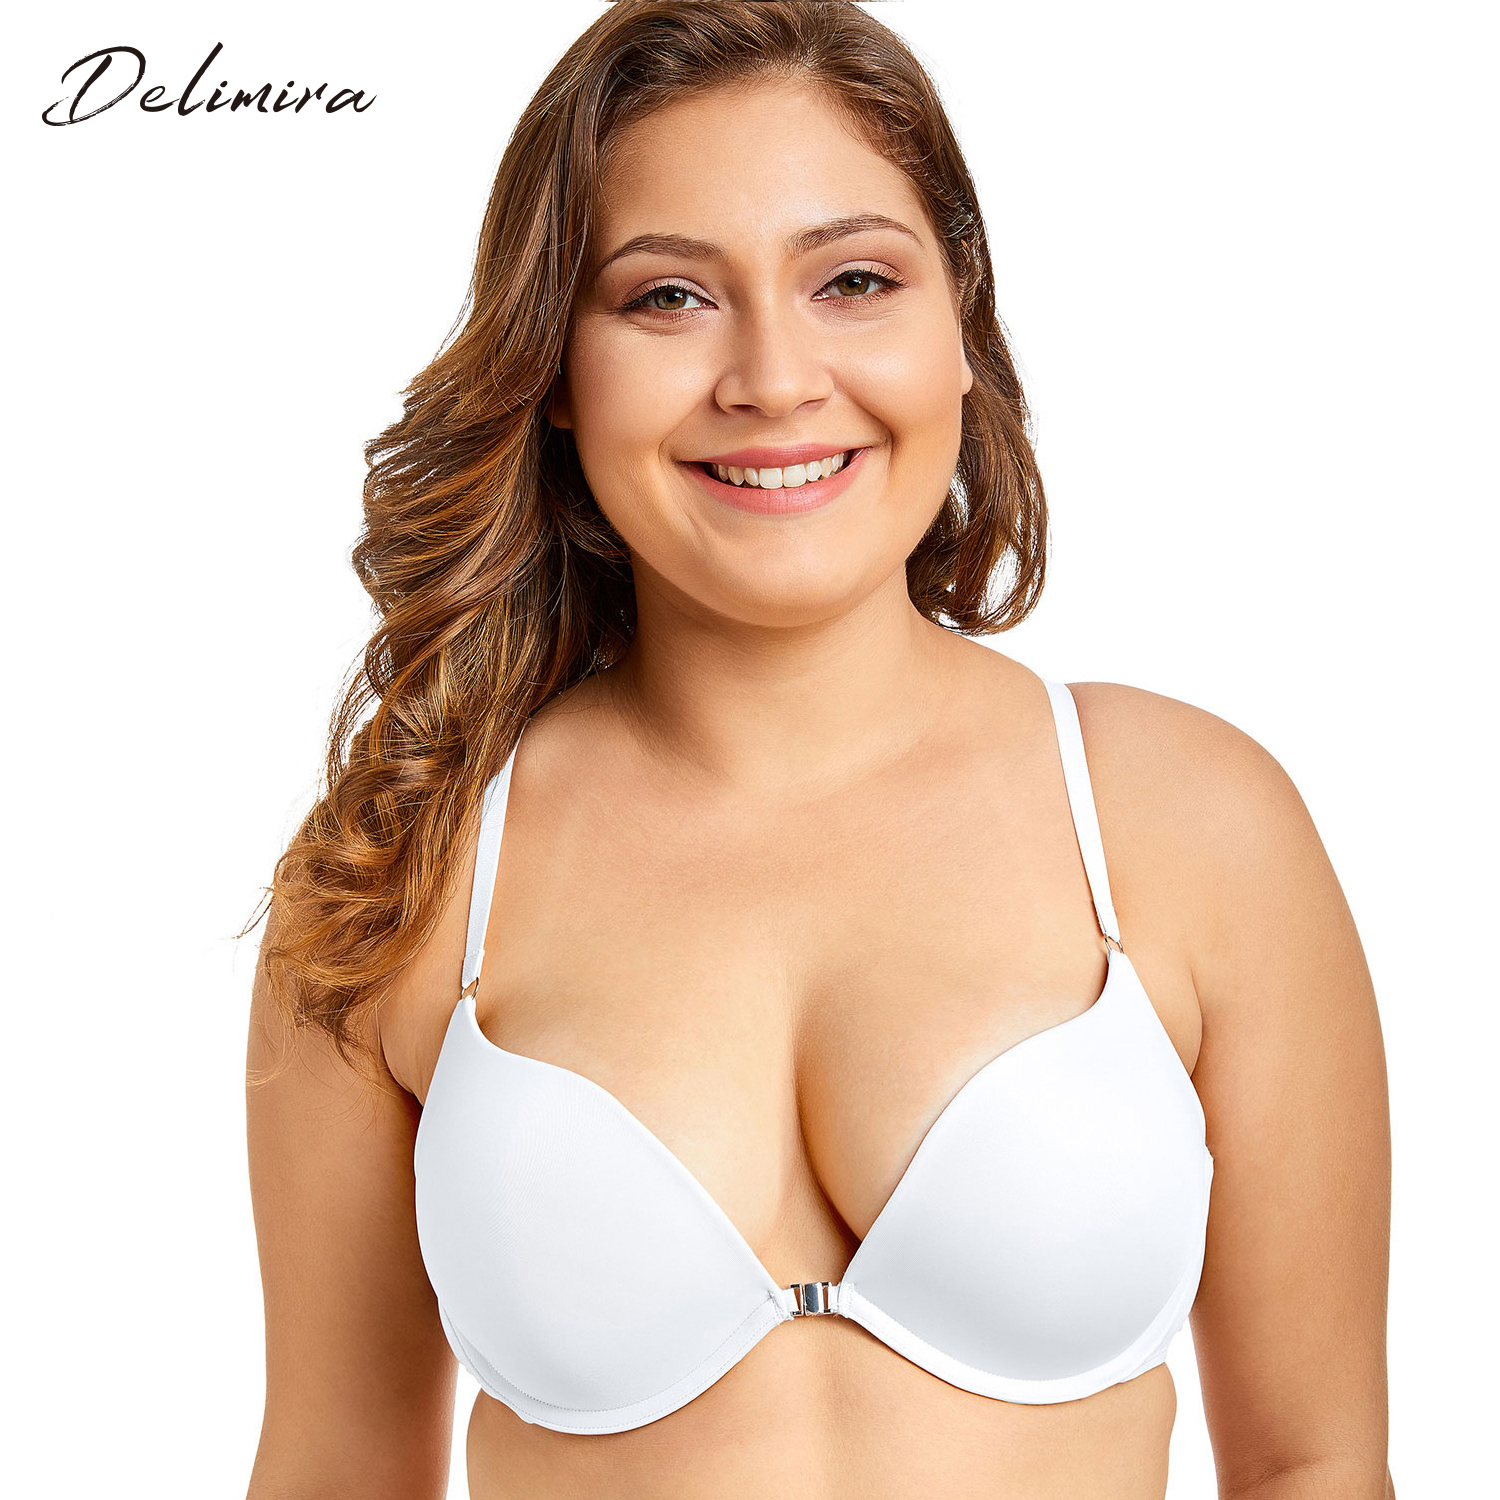 2daa3625e2e8c Delimira Women Sexy Front Closure Padded Push Up X-back Plunge Bra with  Underwire